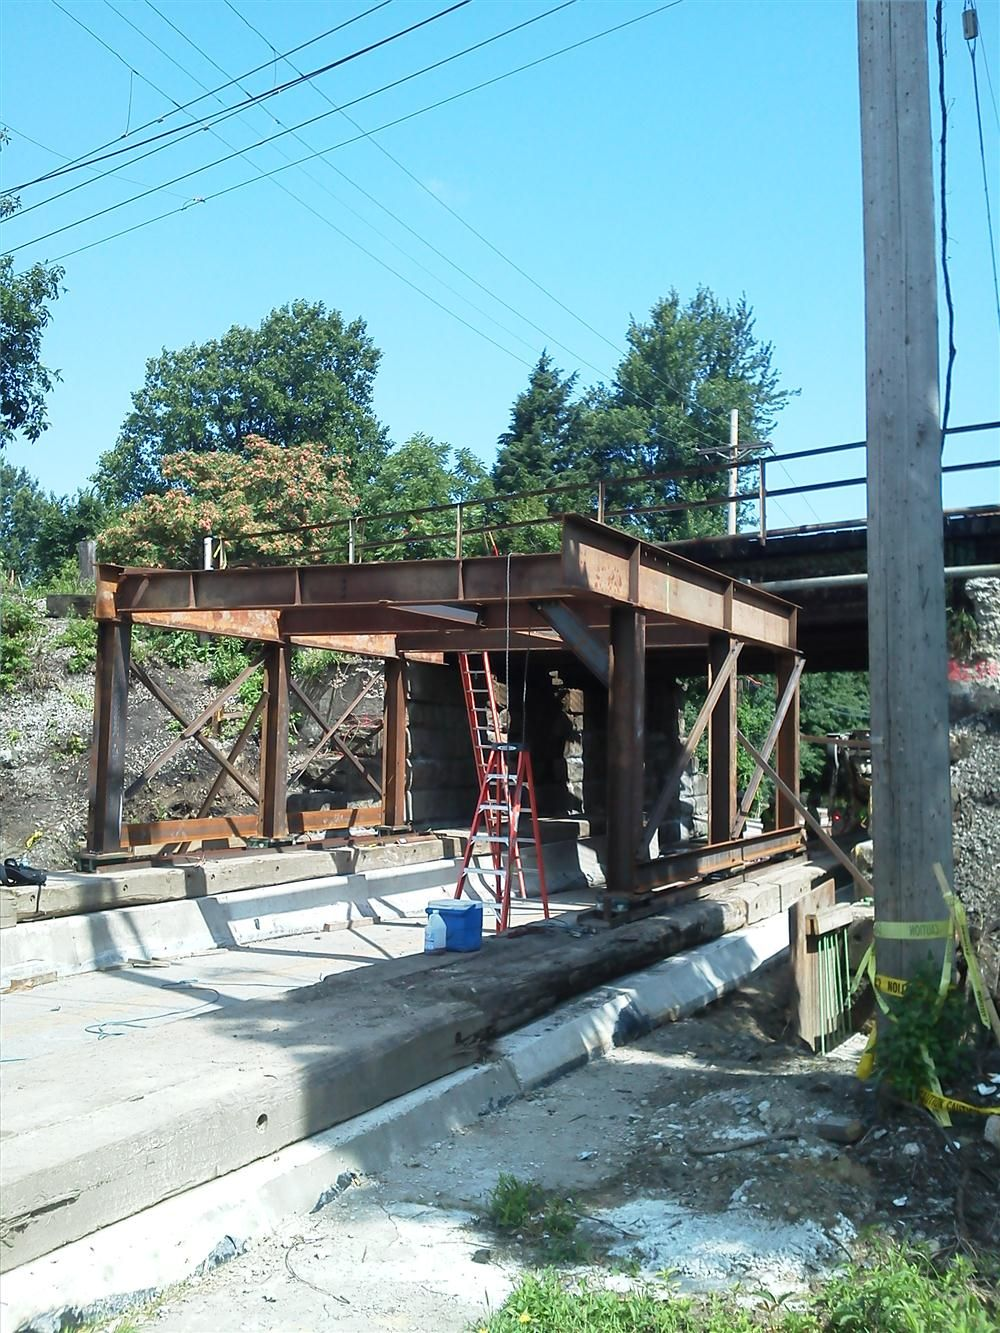 The $27.4 million Ohio Department of Transportation project also includes structure repairs, concrete patching work, and other infrastructure for the bridge built in 1976.